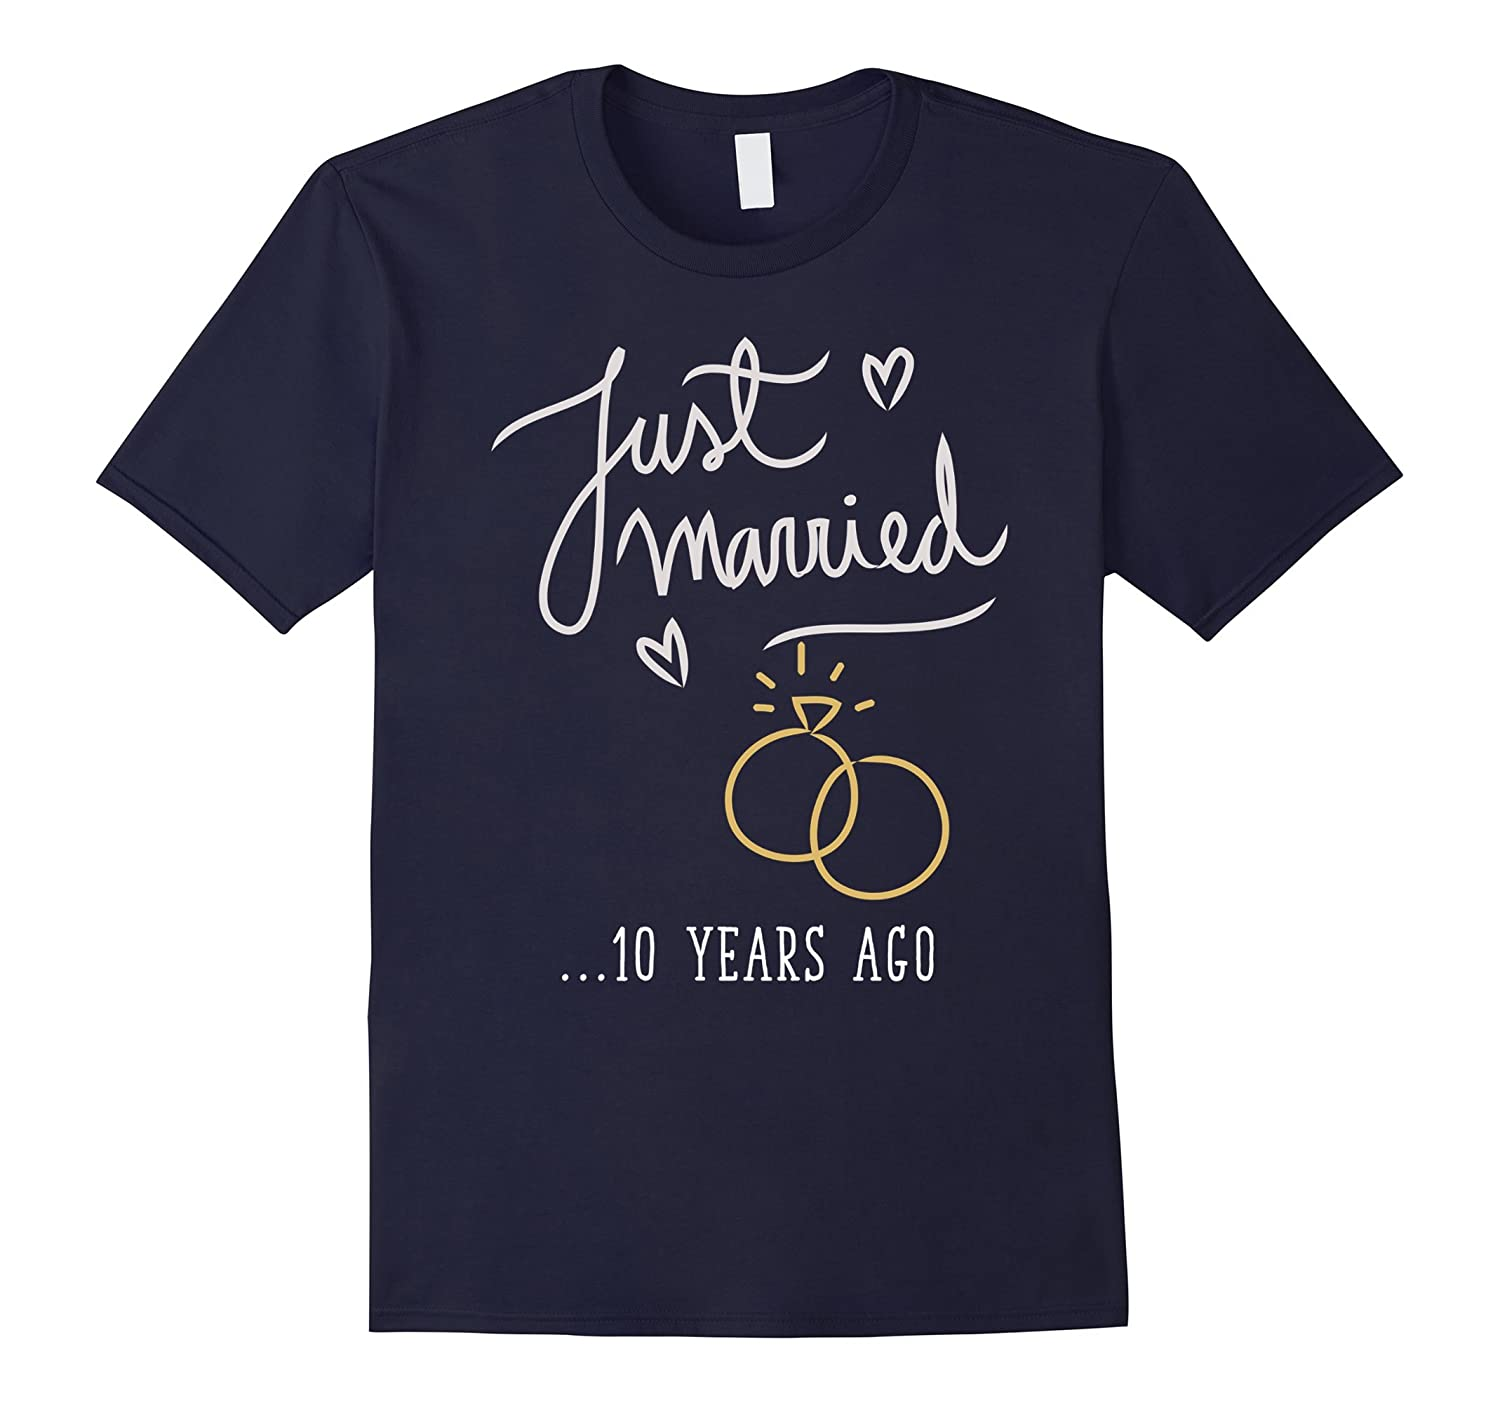 Just Married 10 Years Ago Marriage T Shirt-TH